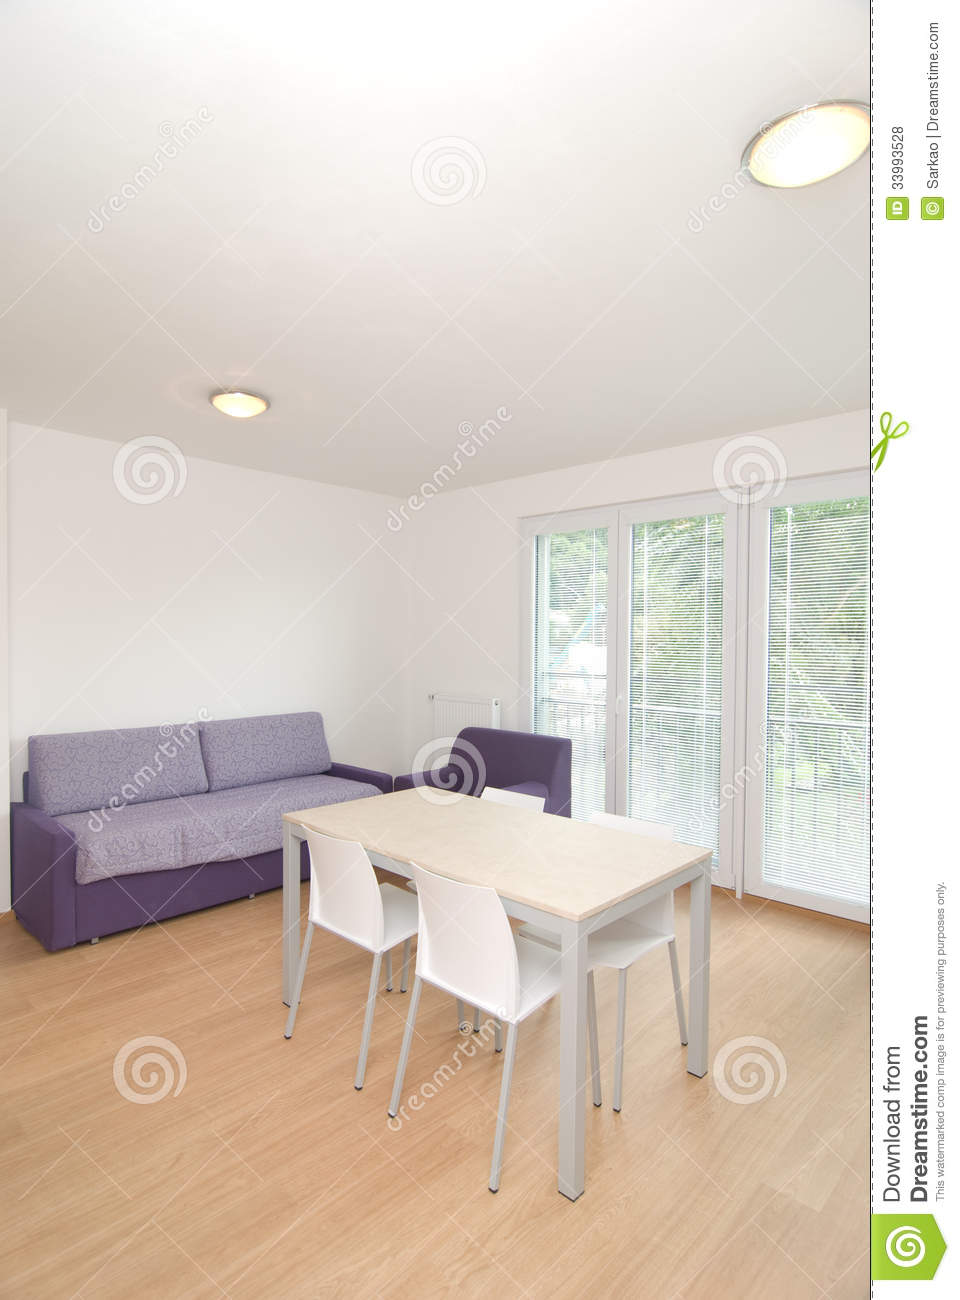 Small flat royalty free stock photos image 33993528 for Small flat interior